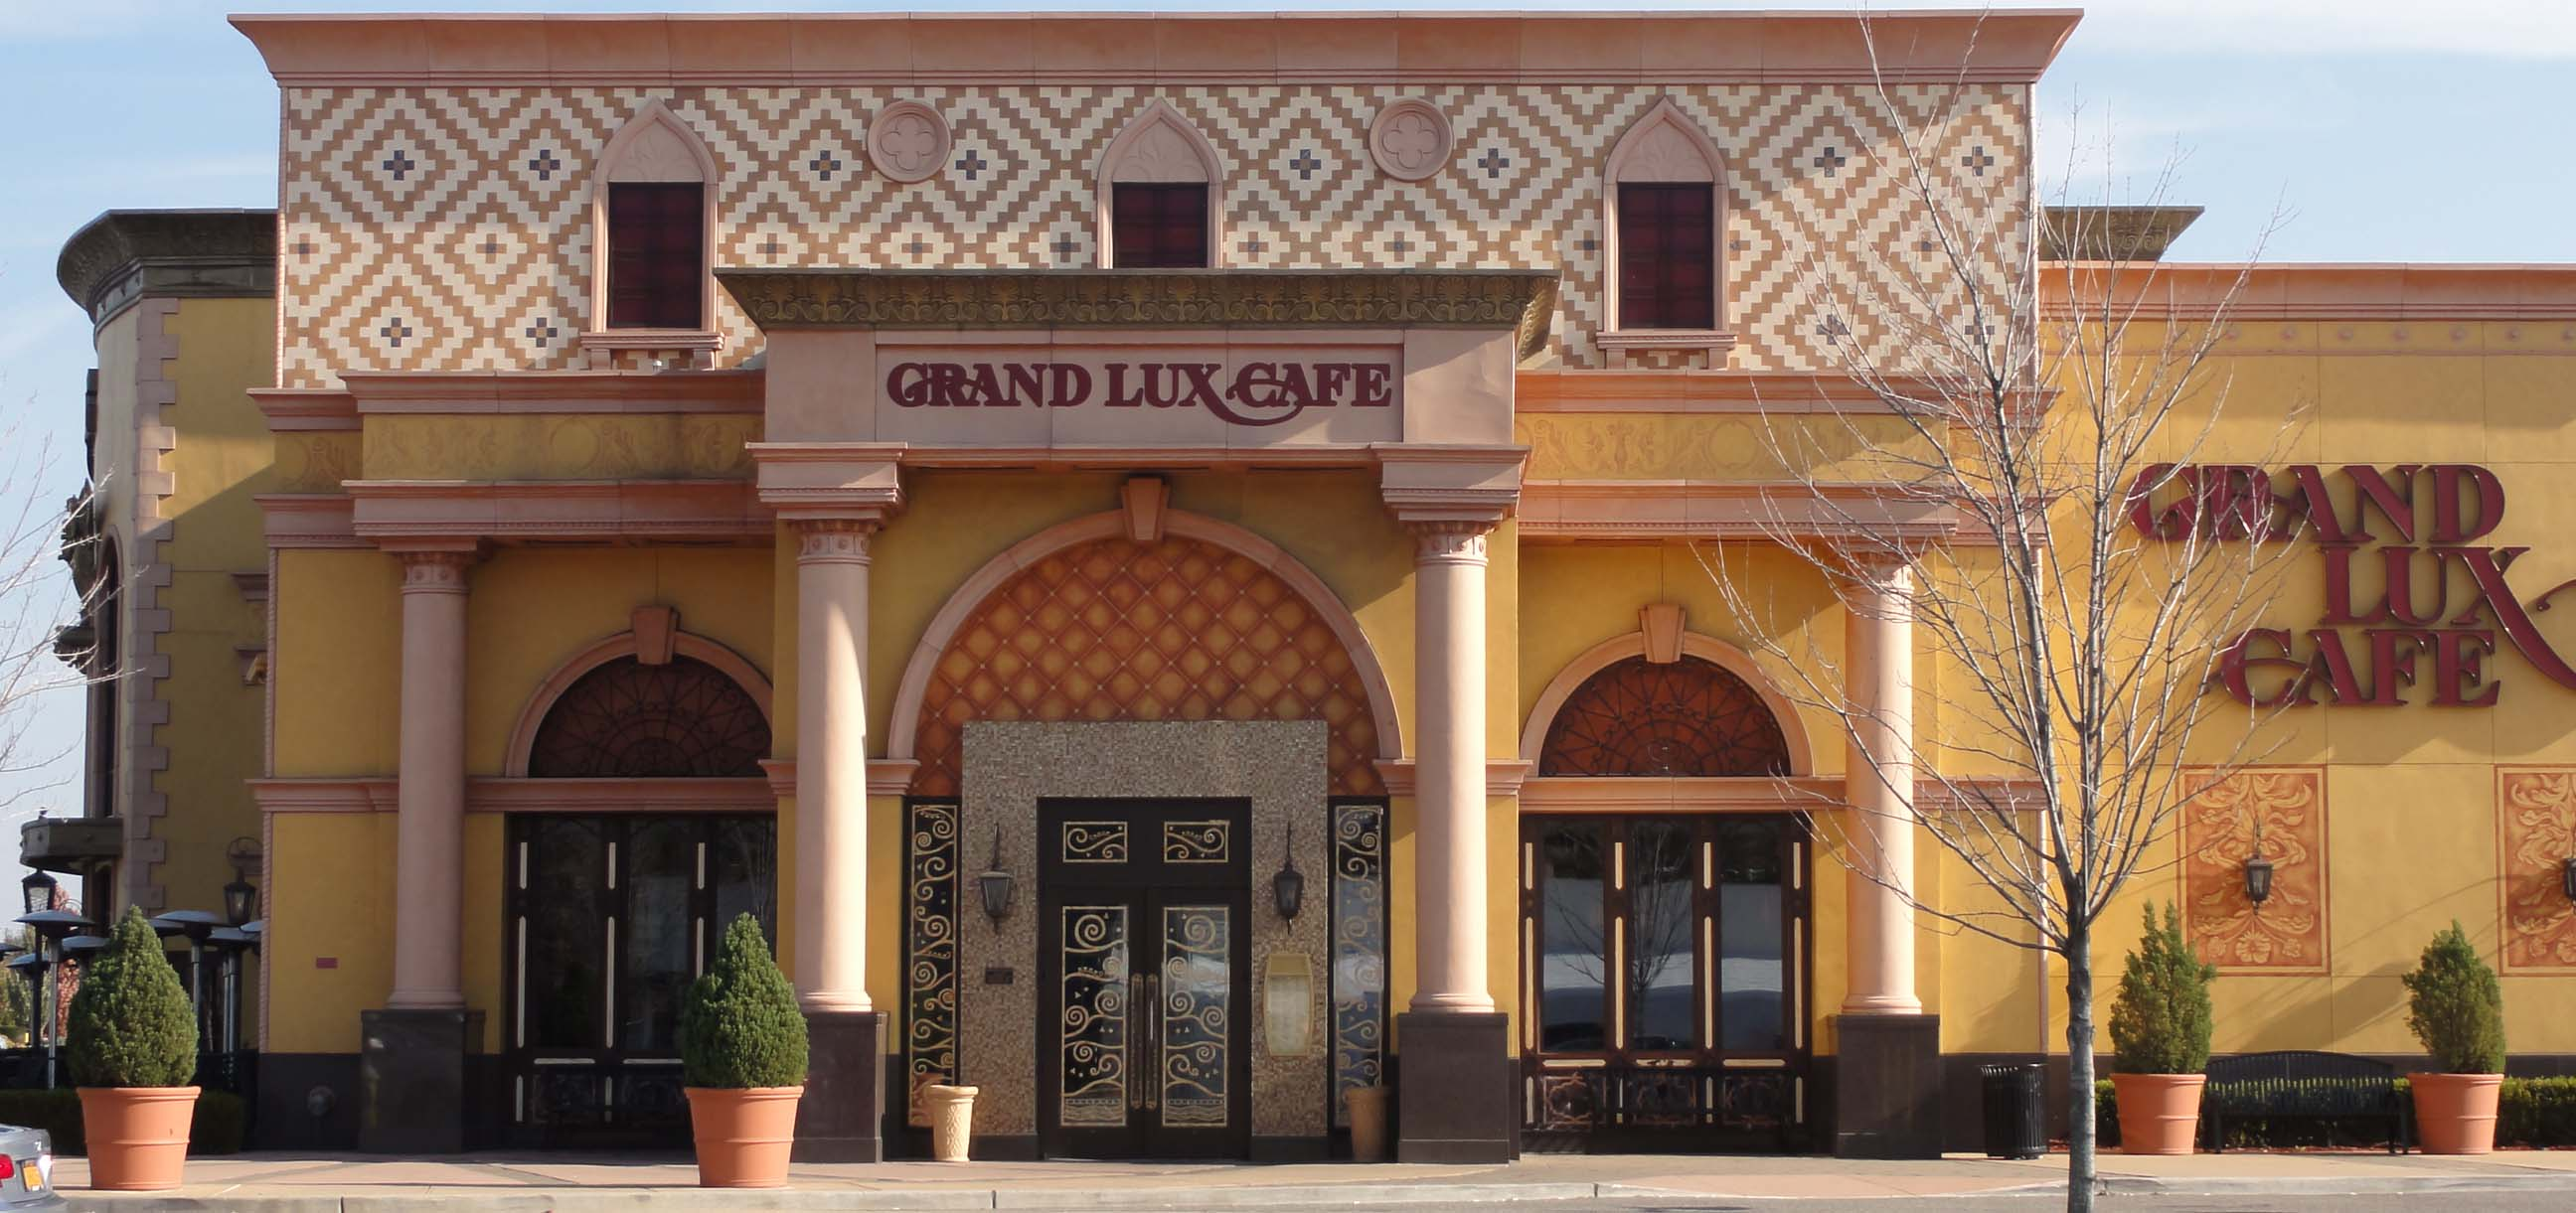 Grand Lux Cafe Garden City Ny